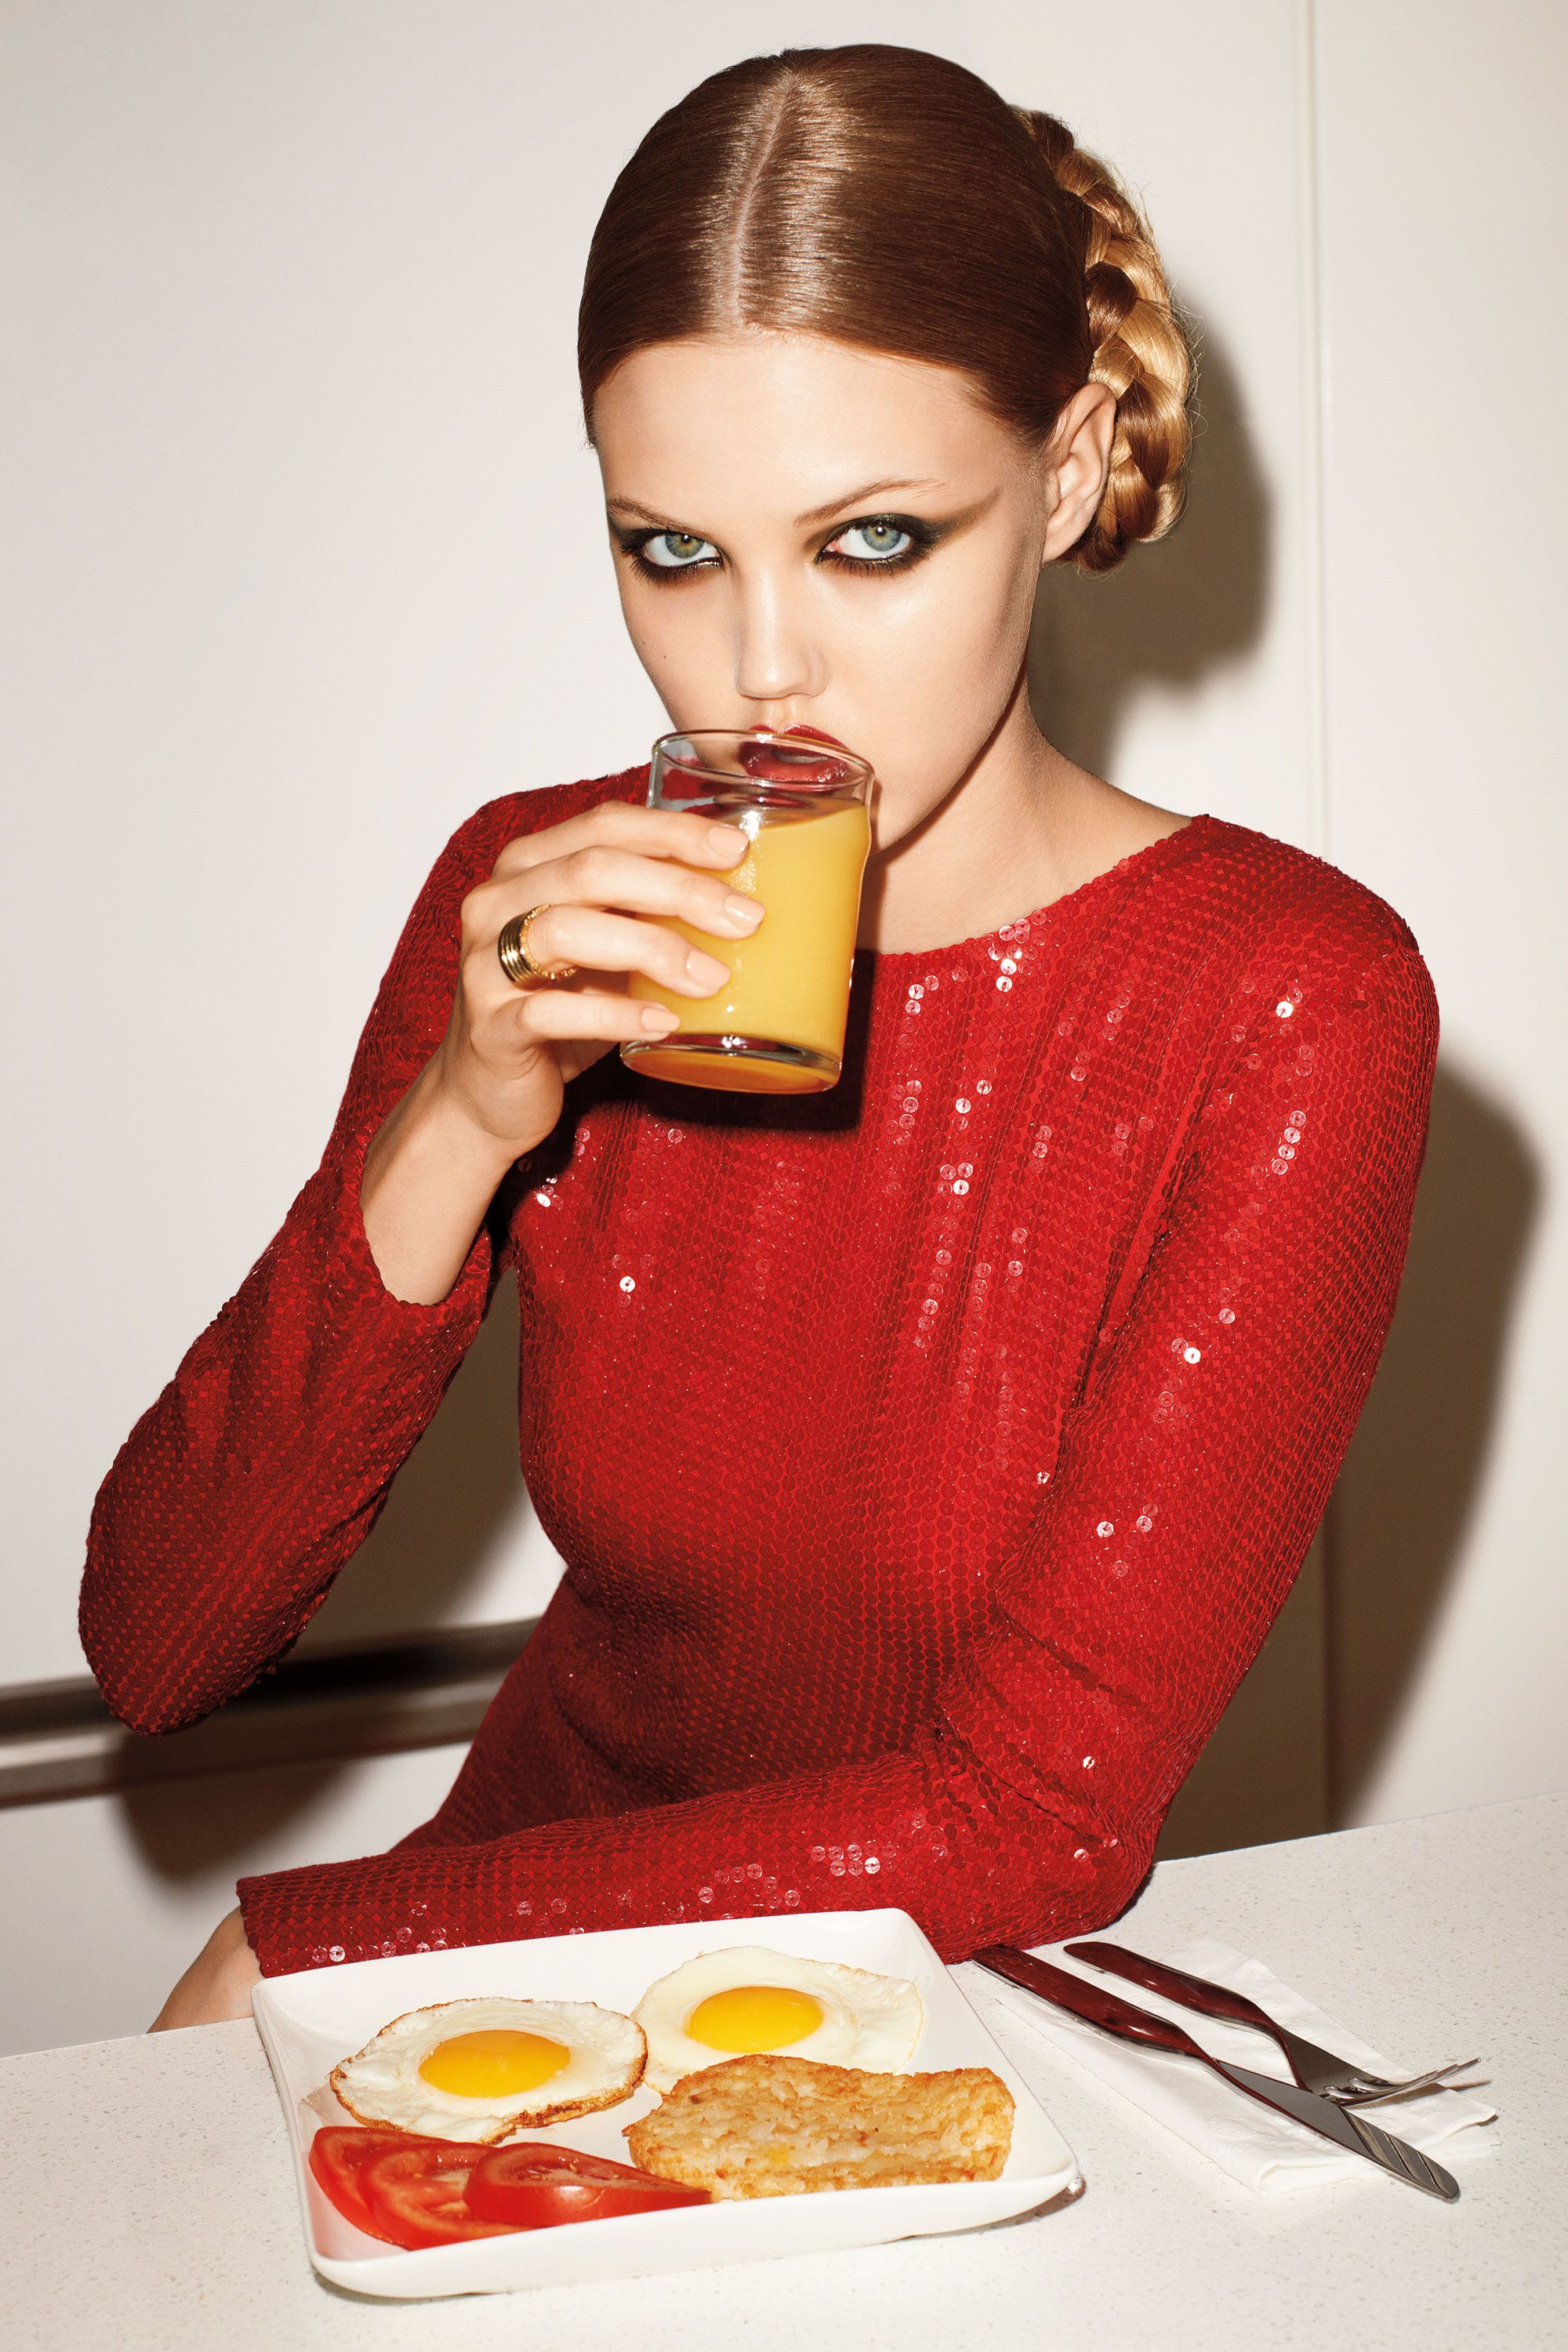 Why Orange Juice is Better Than Green Juice